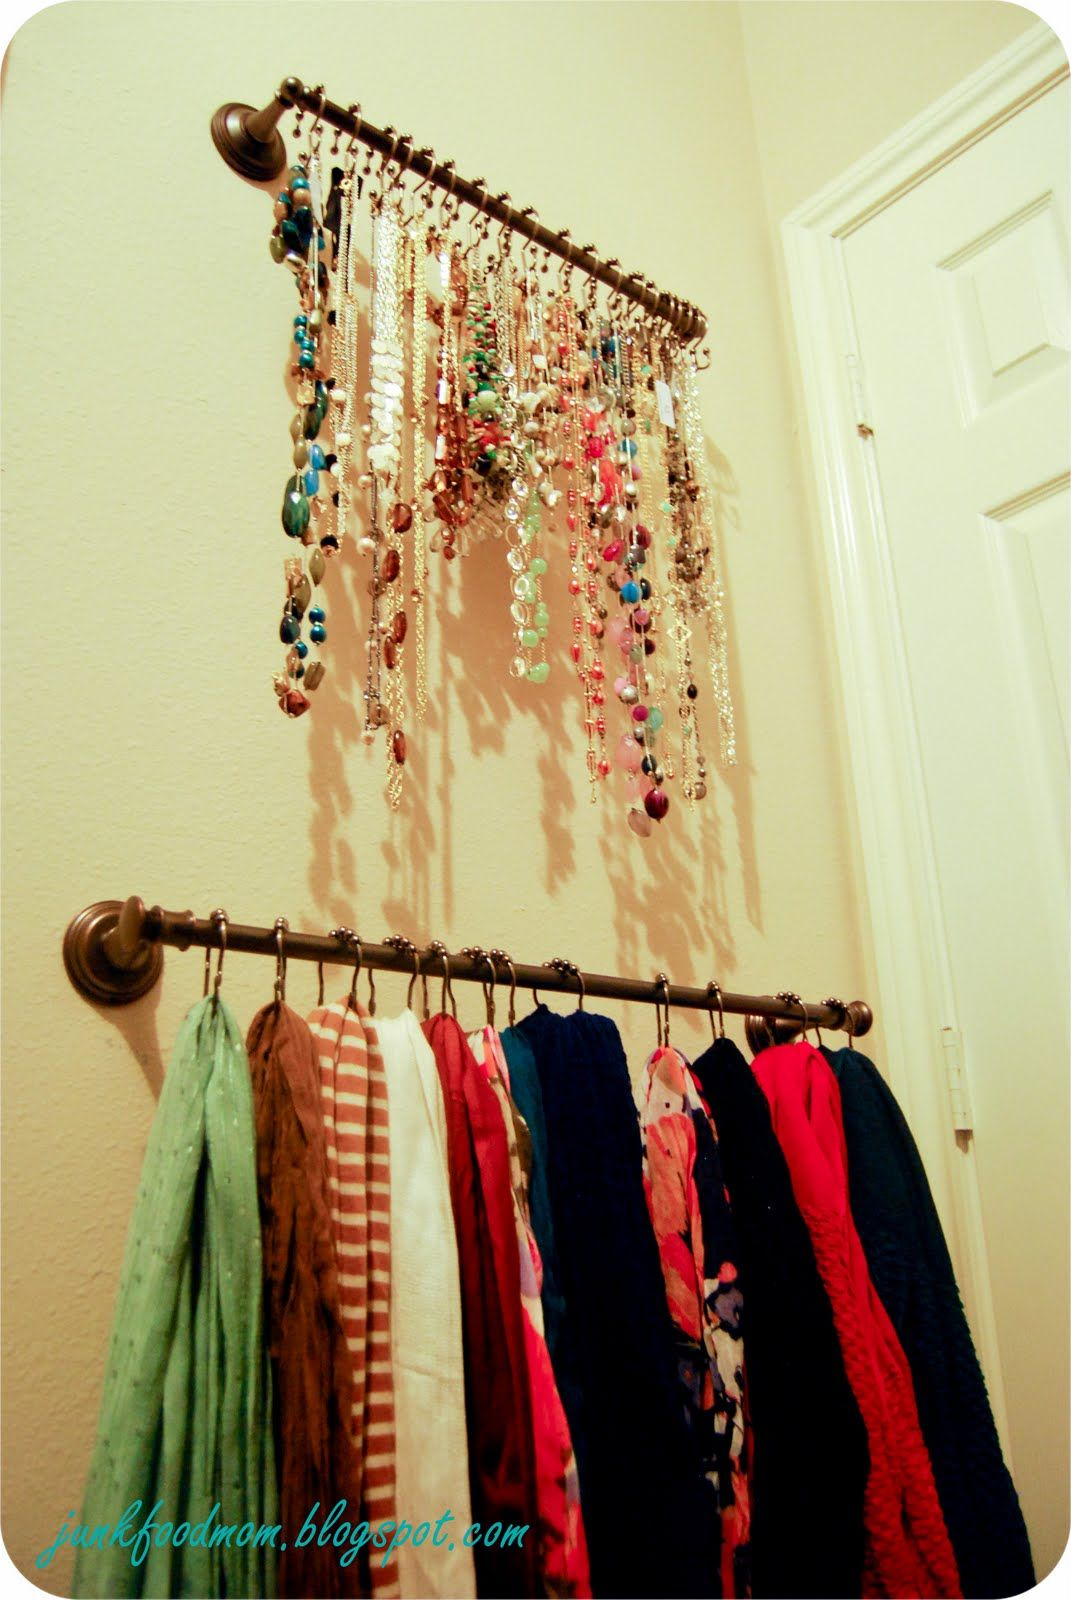 Closet organization: Necklace and scarf storage - towel bars with shower  hooks-really love this idea! Could put on the inside of the closet door, ...